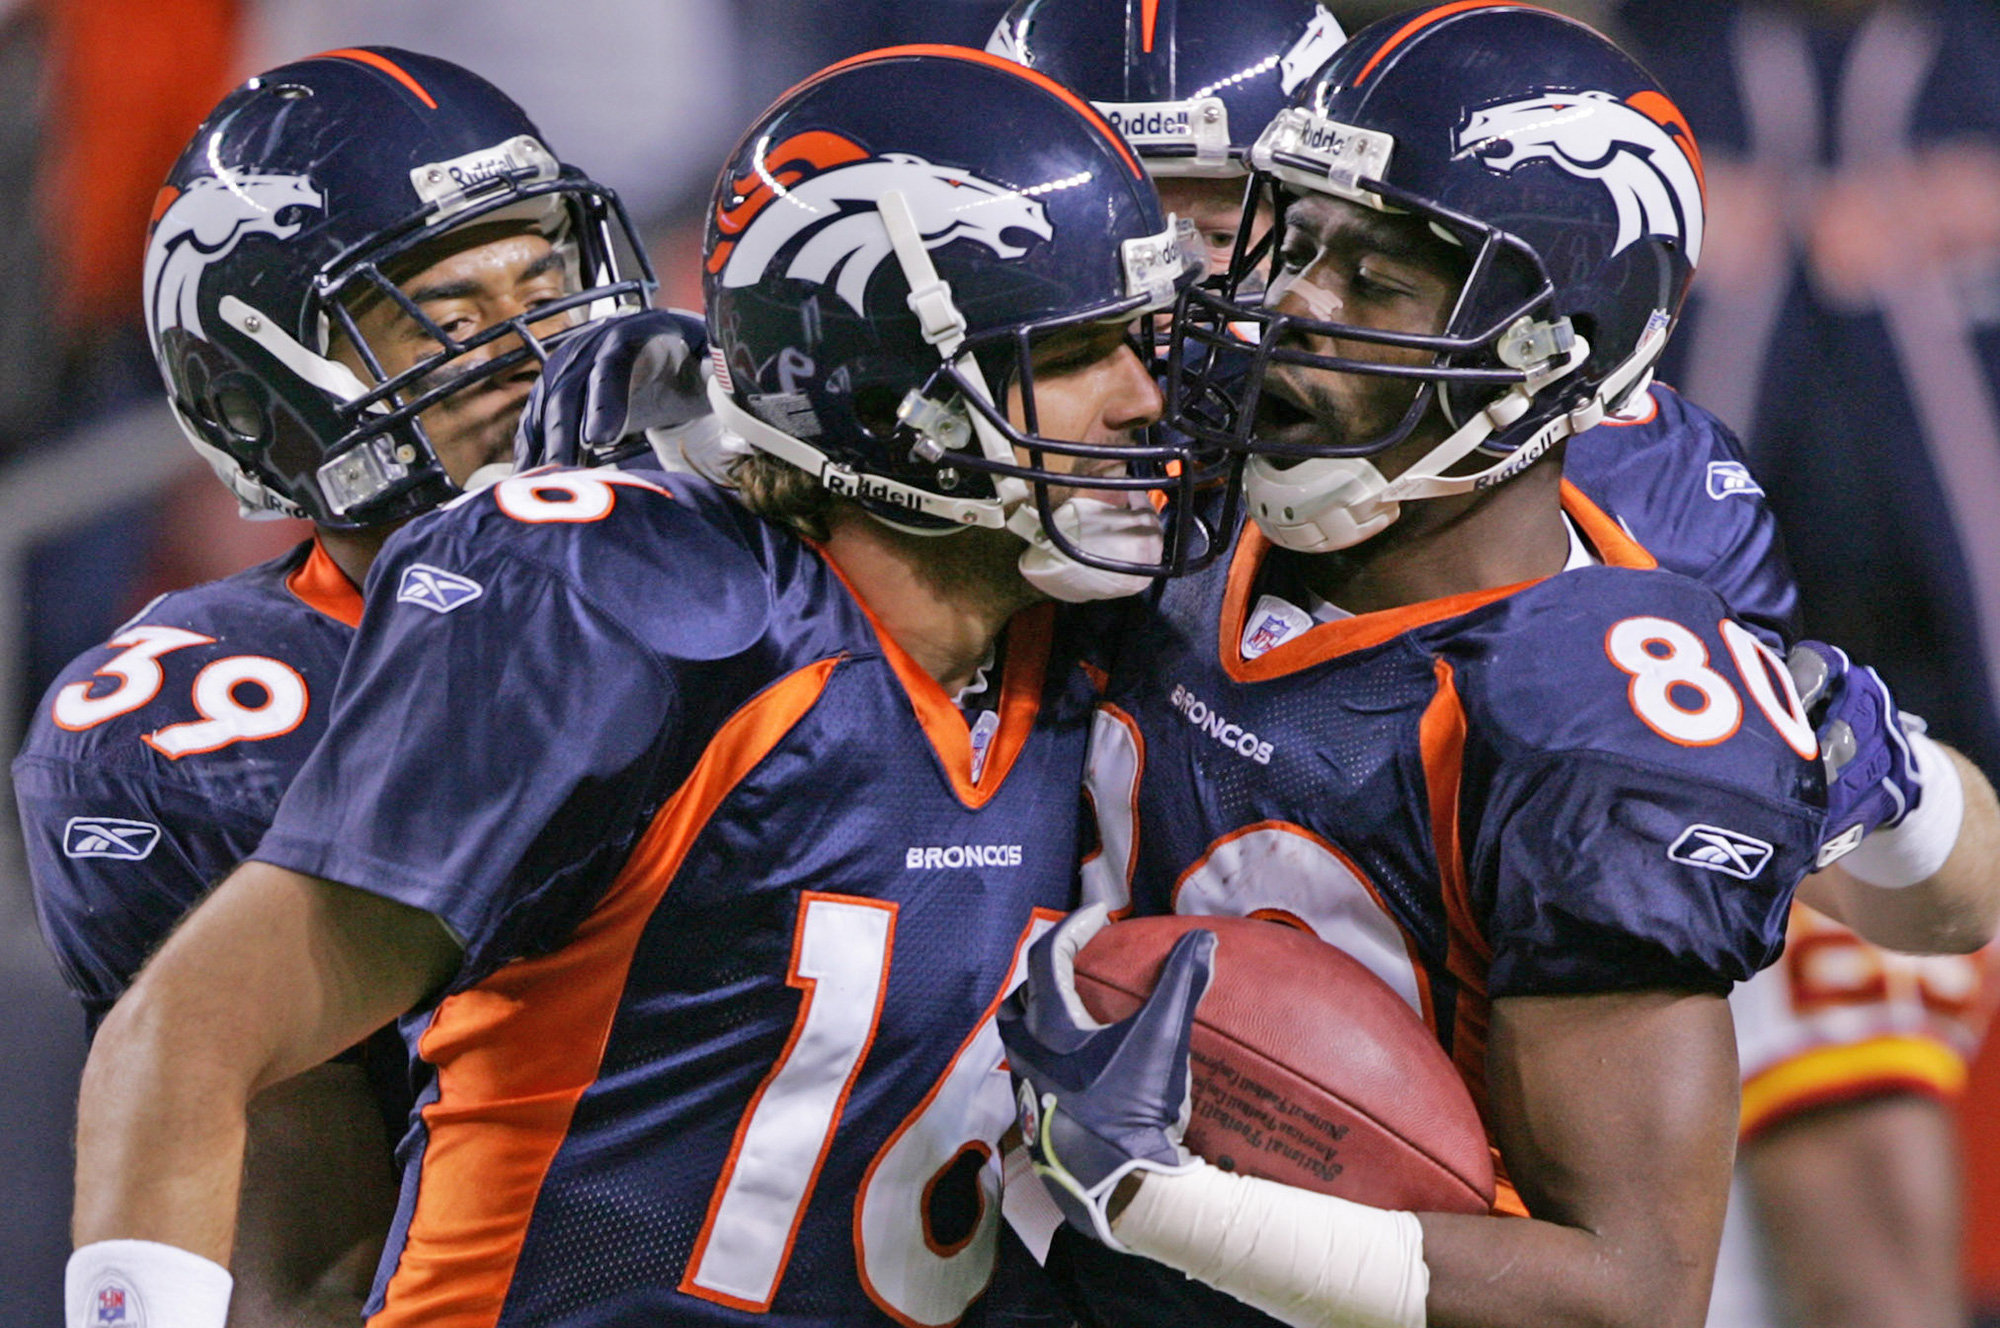 Jake Plummer and Rod Smith